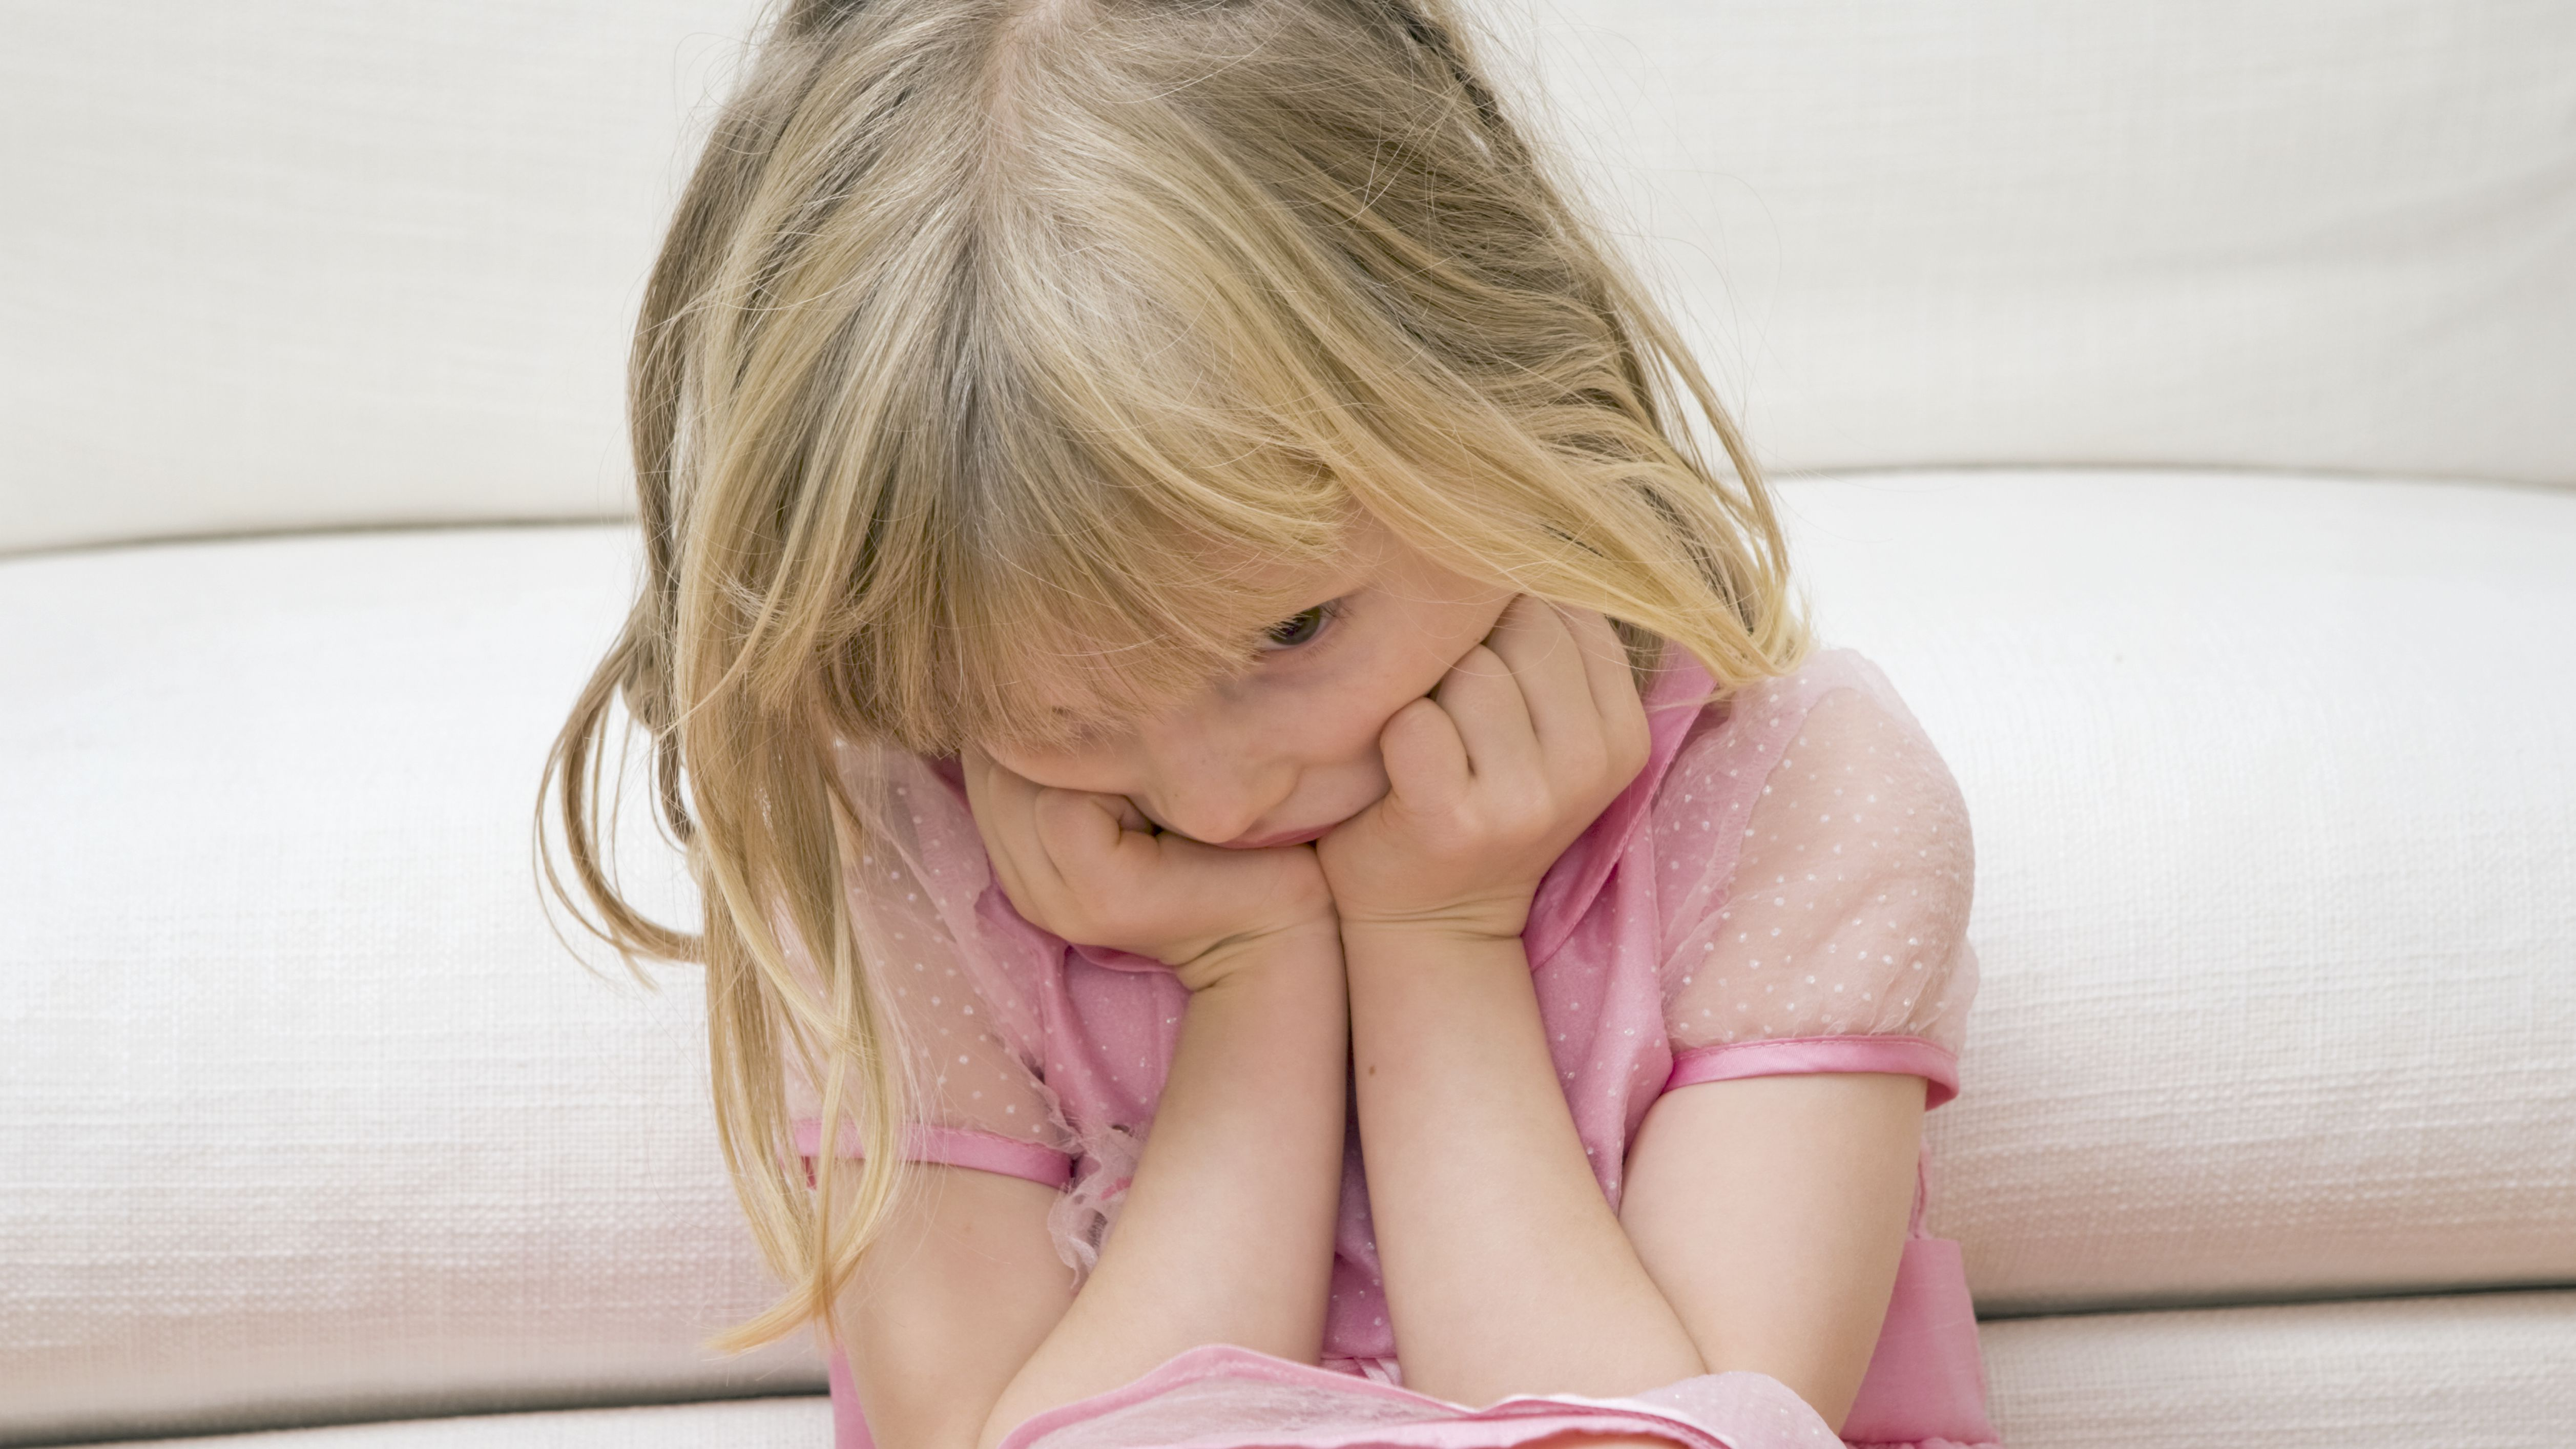 Child Abandonment Issues Following The Loss Of A Parent